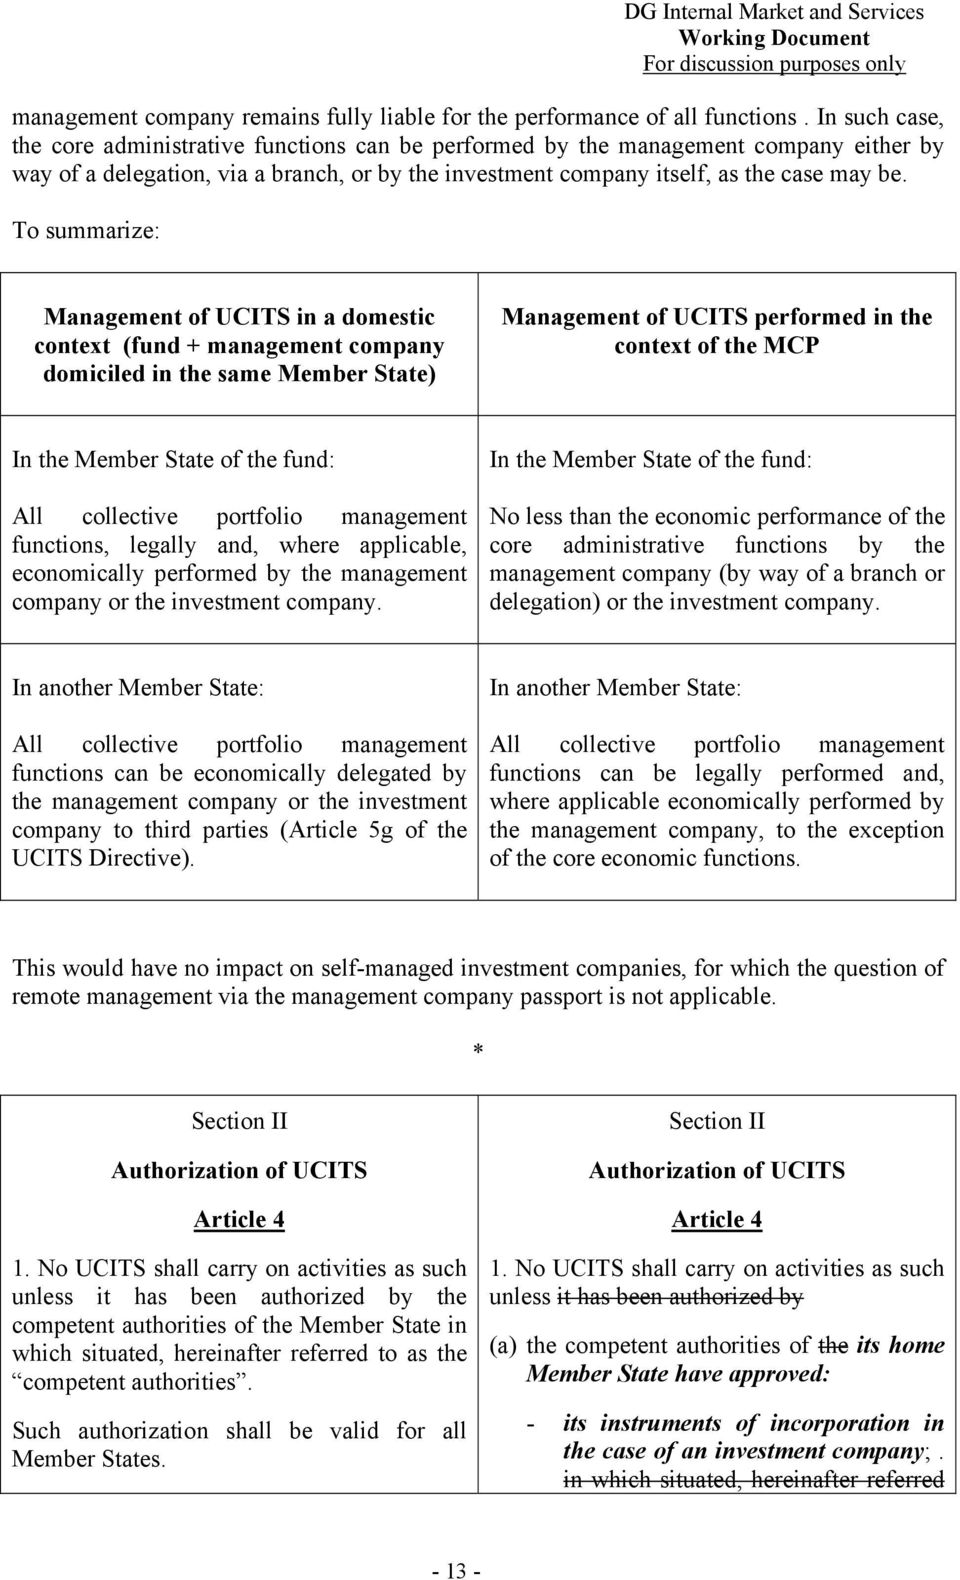 To summarize: Management of UCITS in a domestic context (fund + management company domiciled in the same Member State) Management of UCITS performed in the context of the MCP In the Member State of